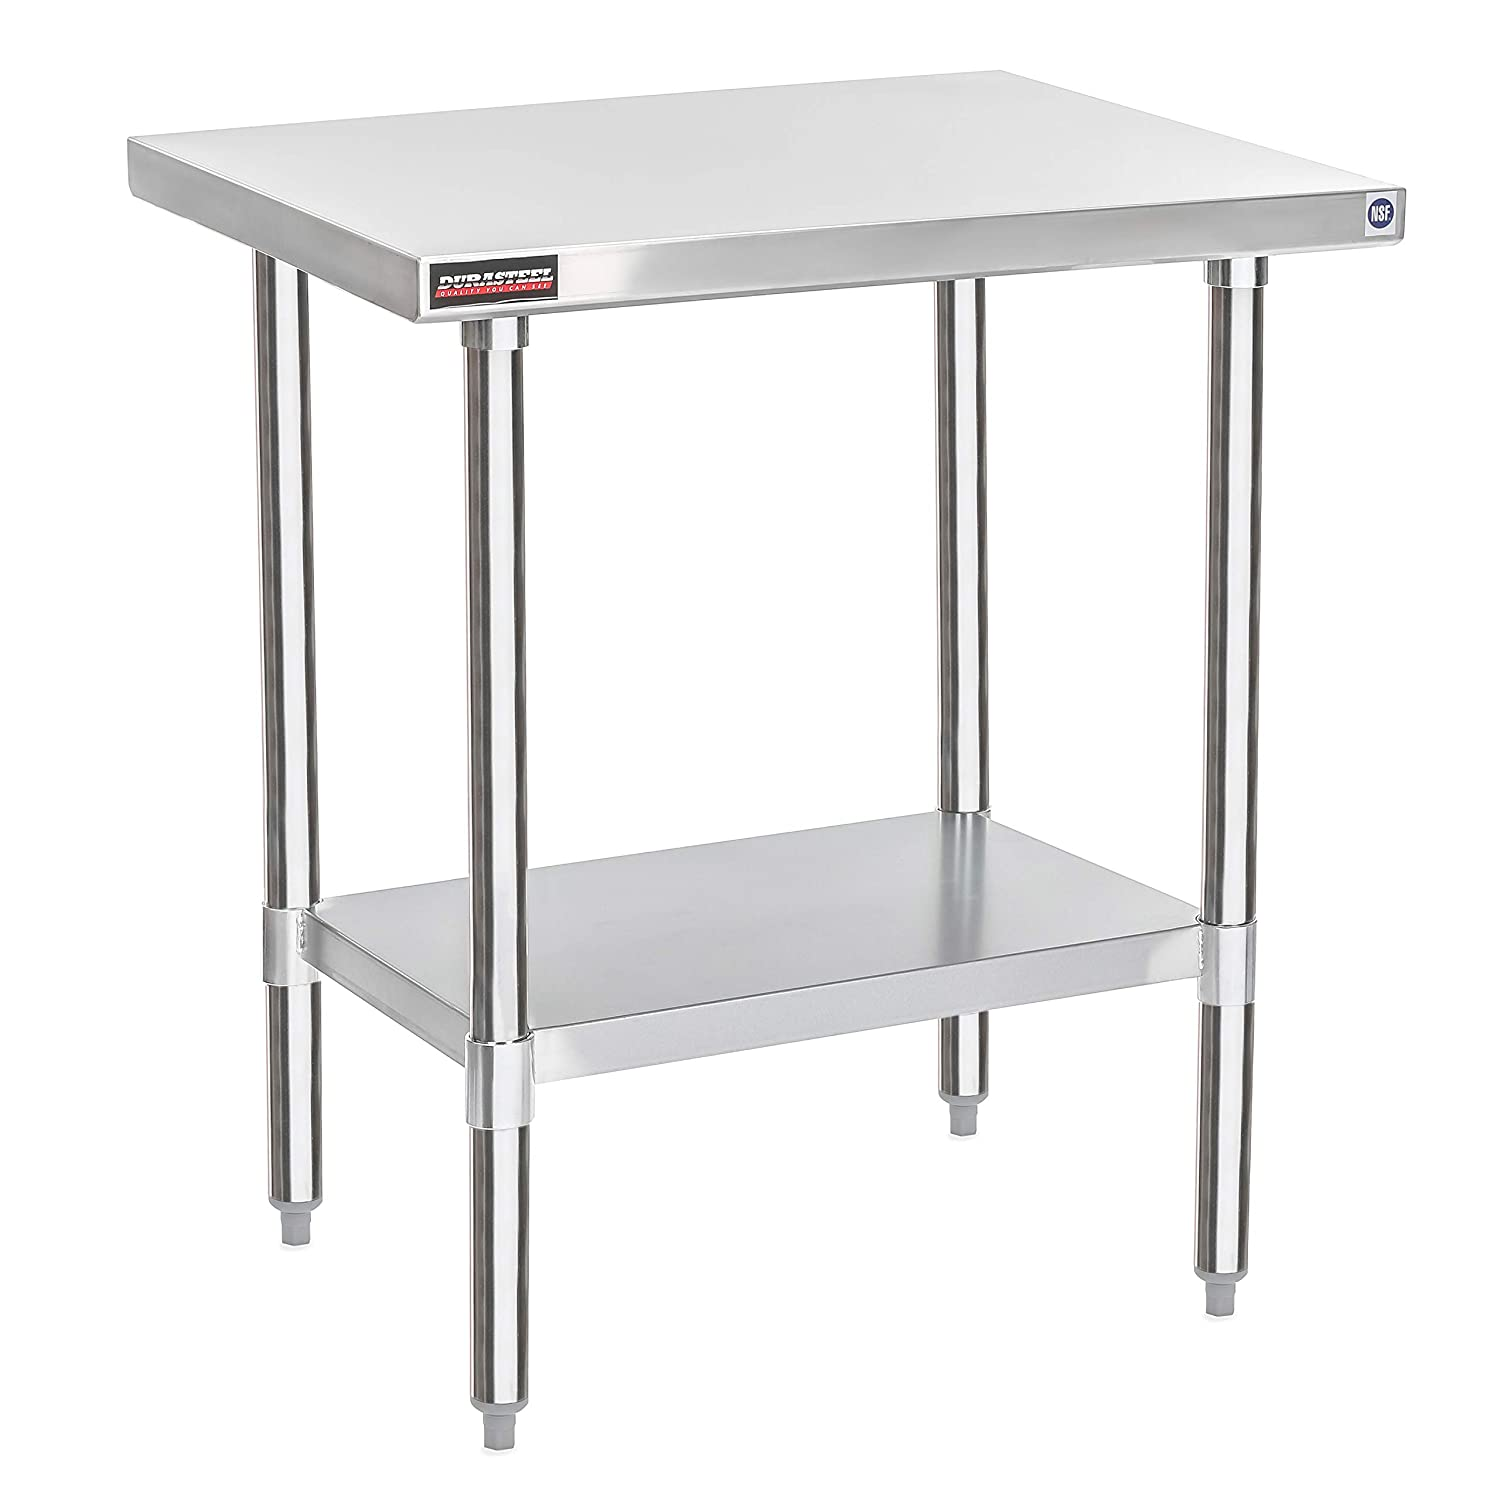 "DuraSteel Stainless Steel Work Table 24"" x 30"" x 34"" Height - Food Prep Commercial Grade Worktable - NSF Certified - Fits for use in Restaurant, Business, Warehouse, Home, Kitchen, Garage"